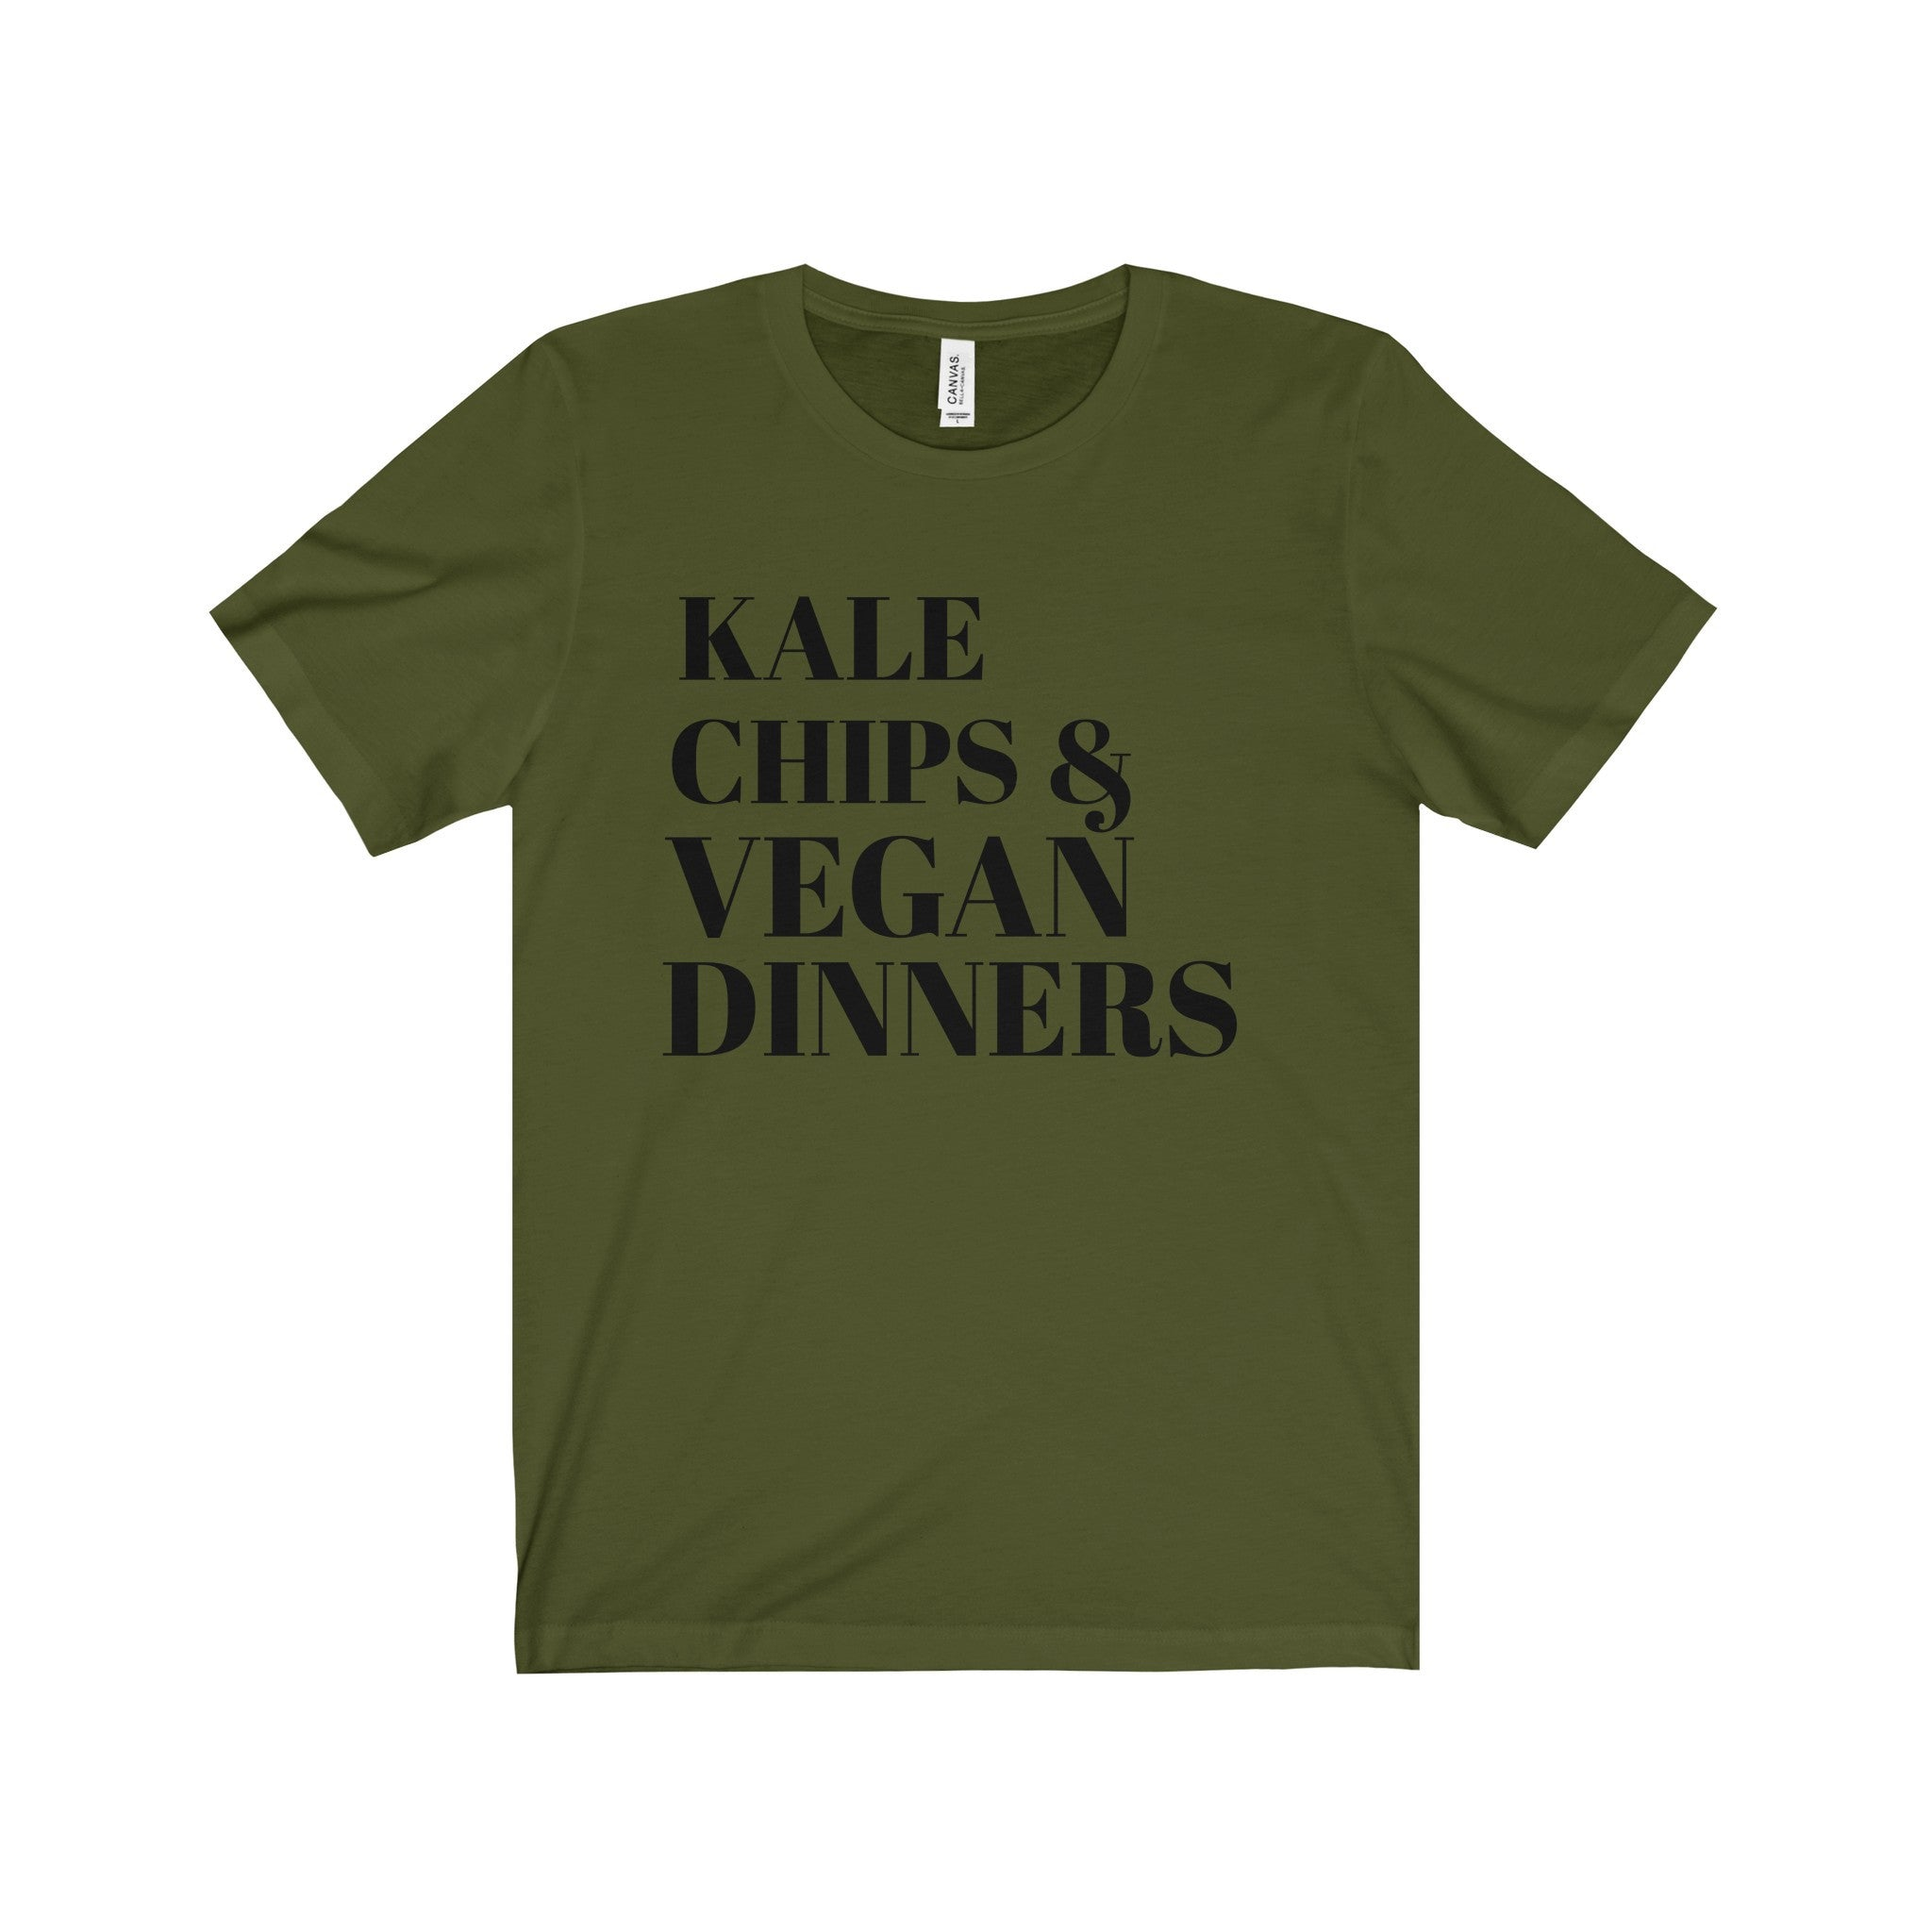 Kale Chip and Vegan Dinners Black Letter Tee (8 colors available)